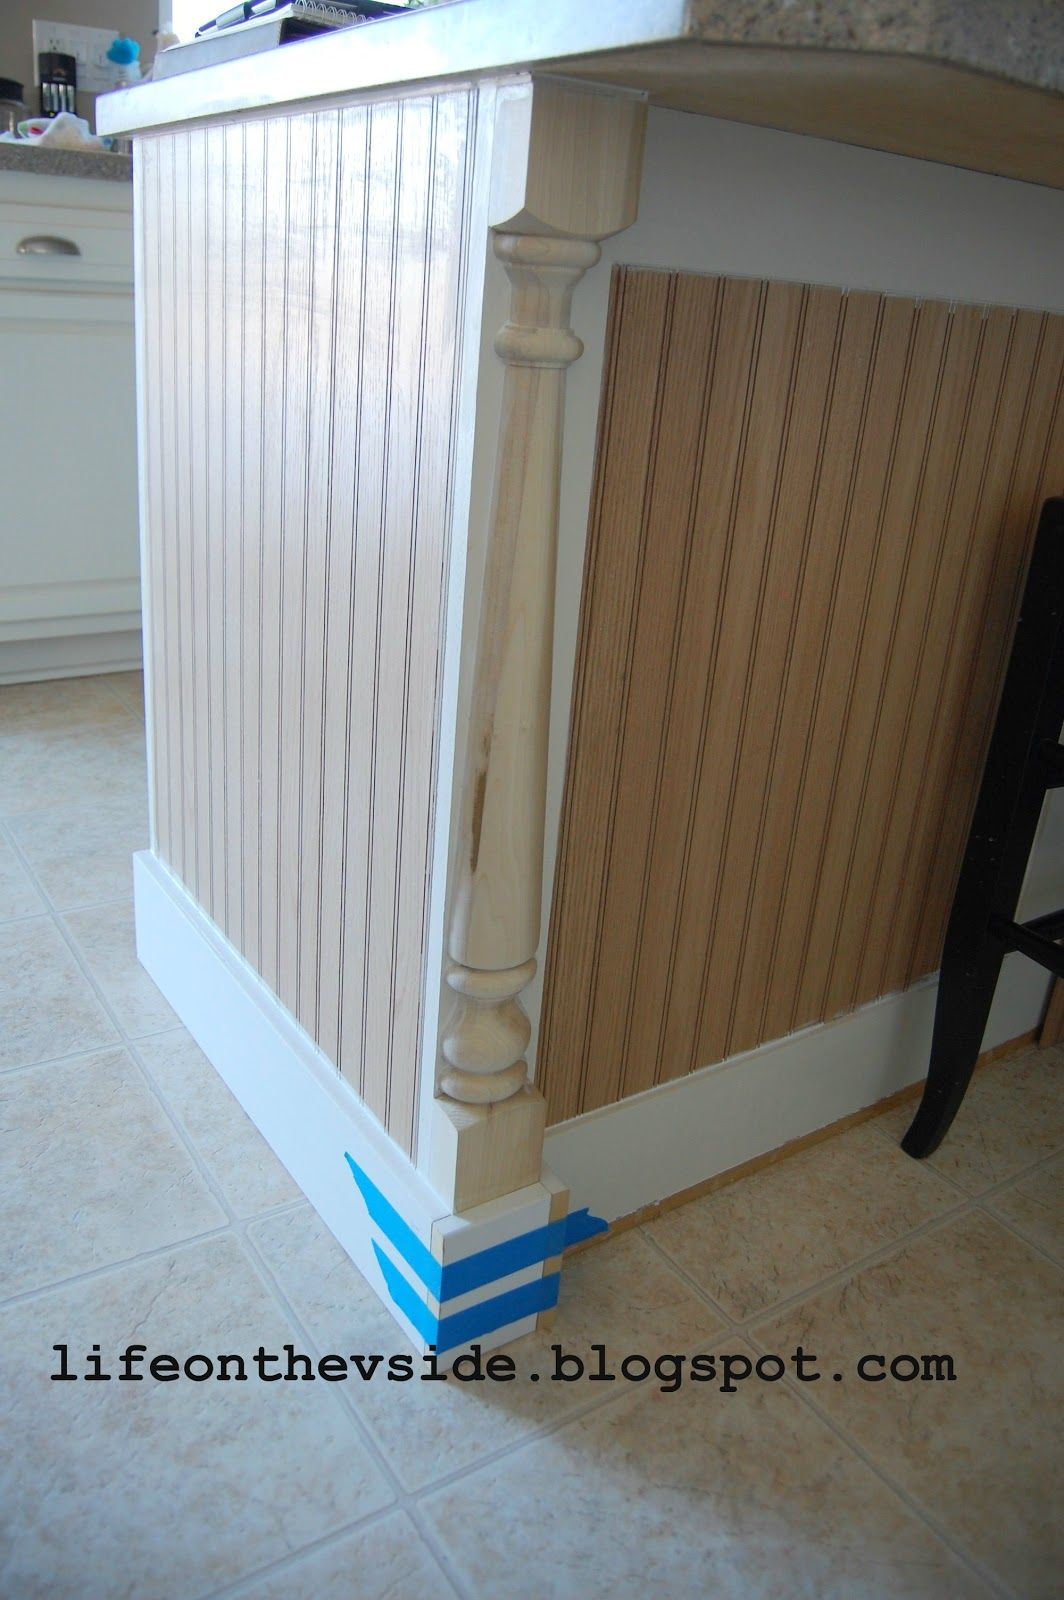 Painted Bead Board Walls And Crown Molding Description From Pinterest Com I Searched For This On B Kitchen Island Makeover Diy Kitchen Island Home Remodeling Update kitchen island ideas